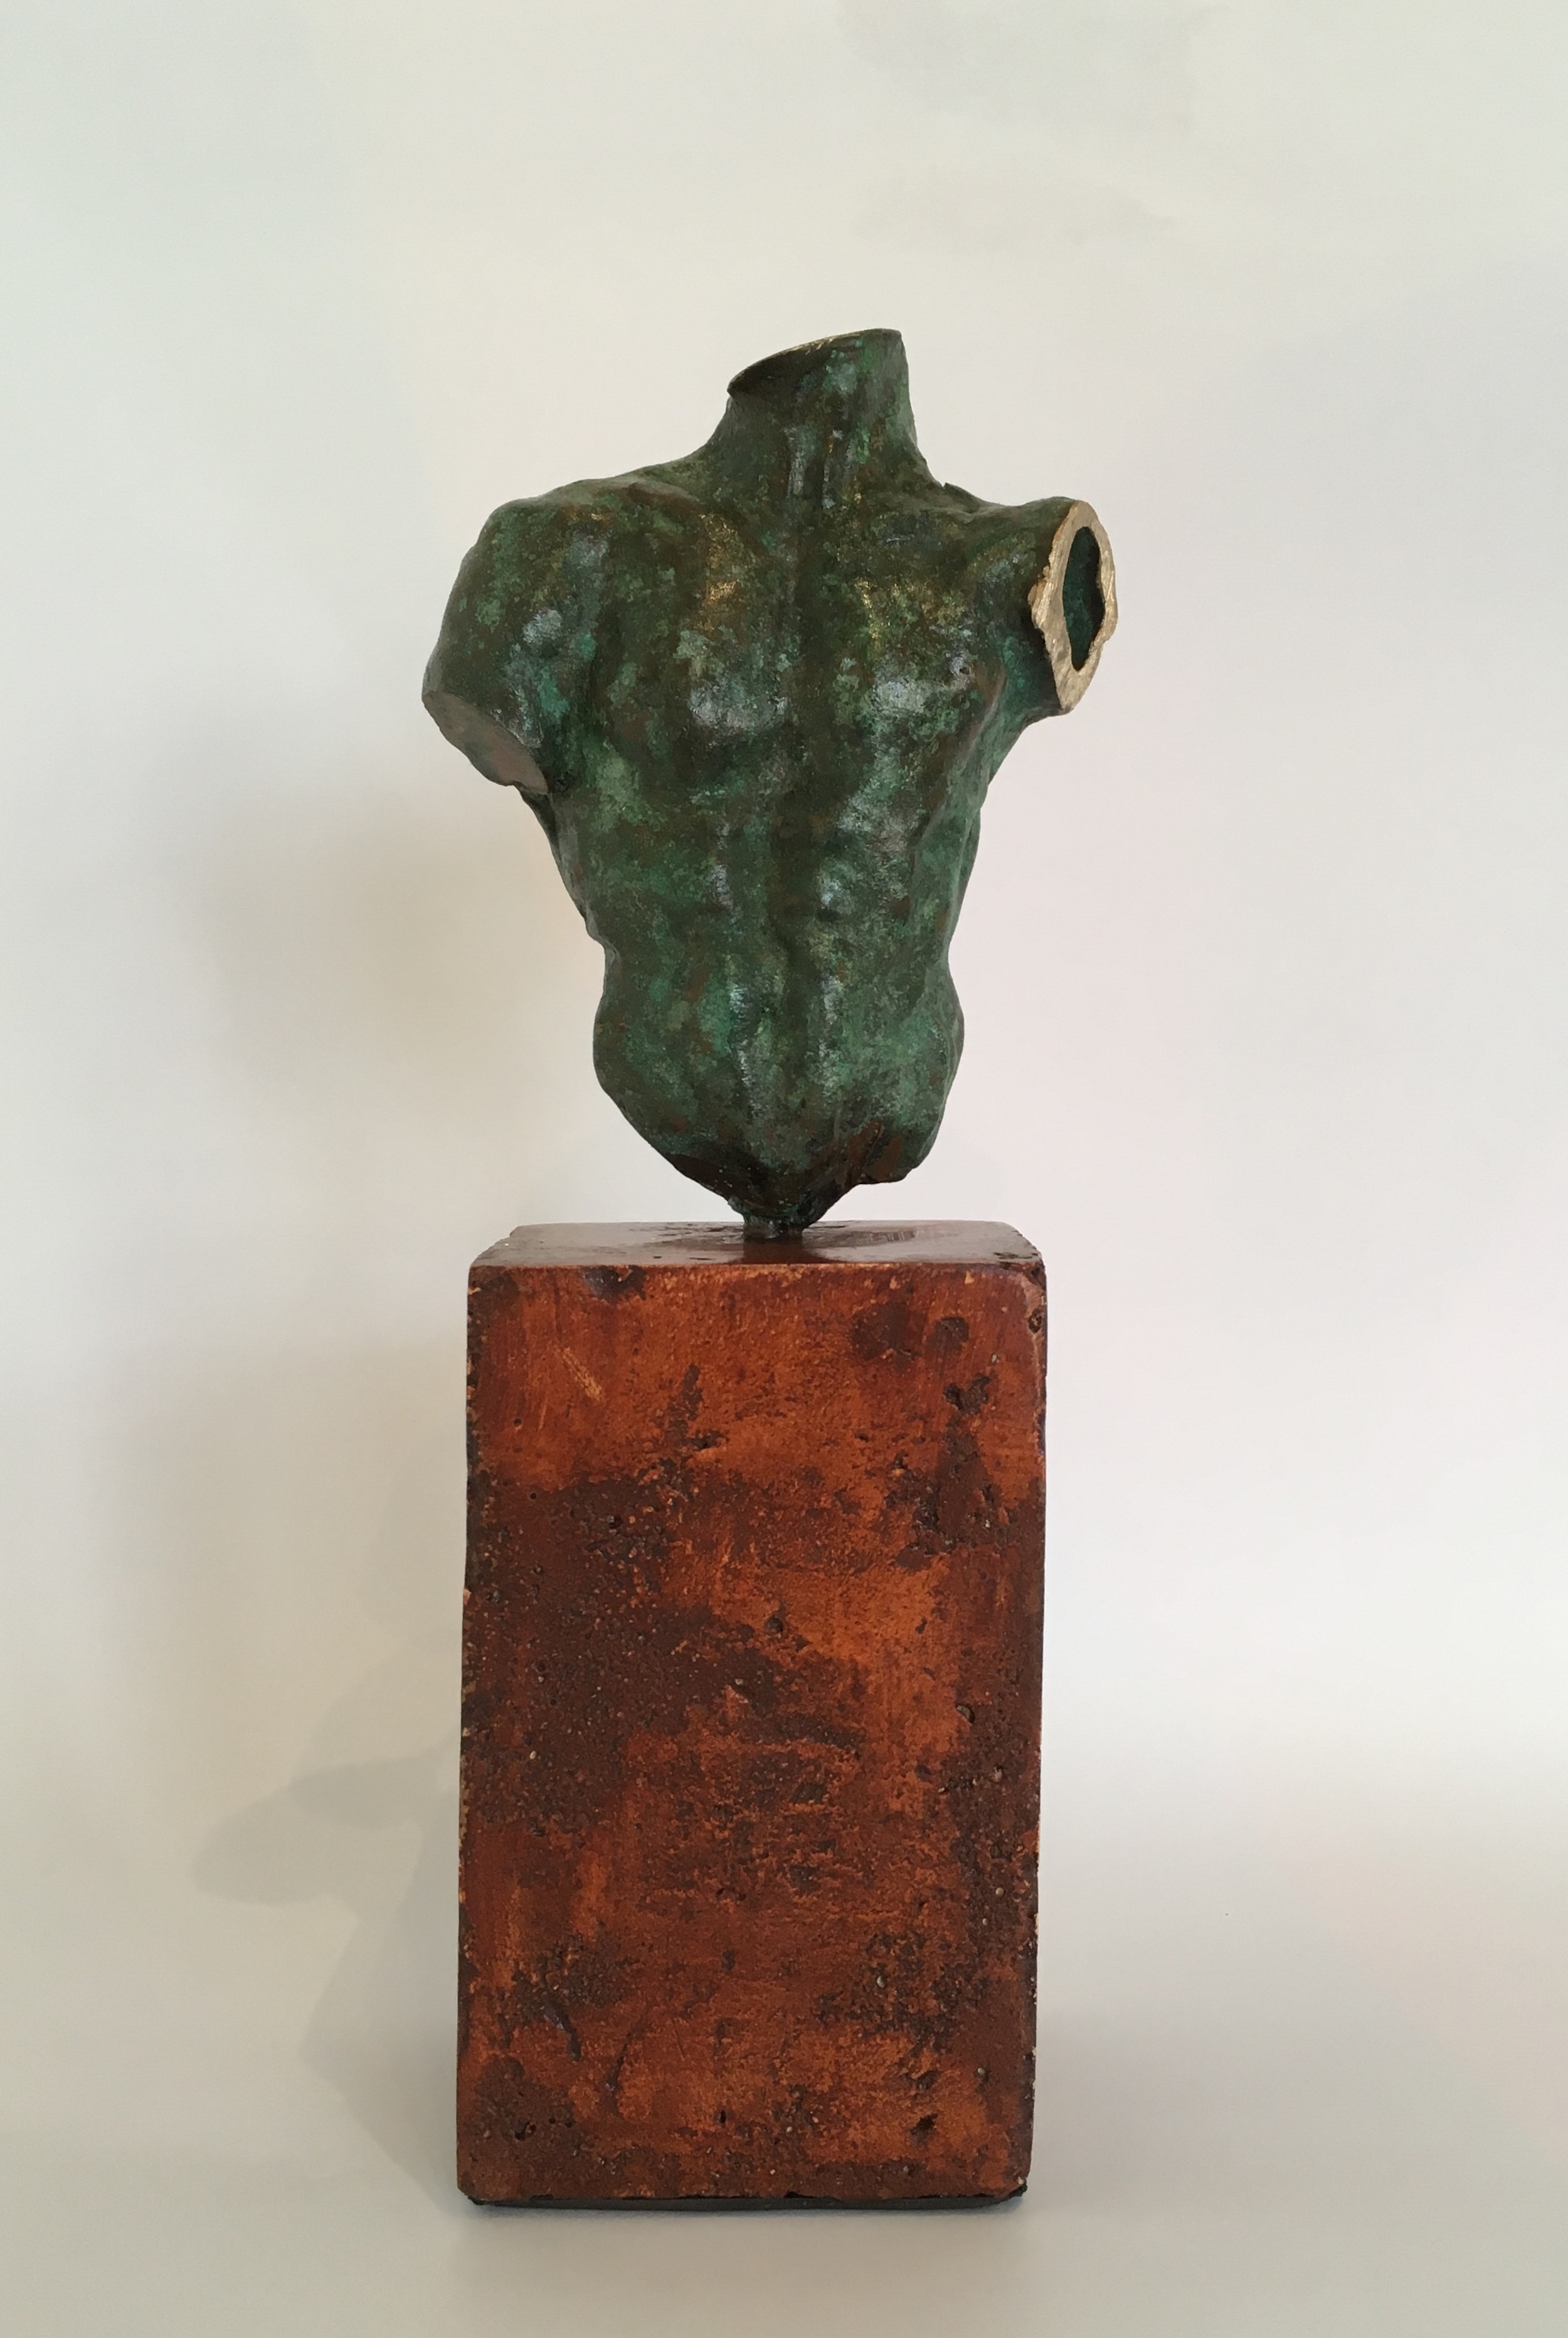 Title: Torso I  Size: H 28 cm  Medium: Bronze Edition 1/1  RESERVED: May become available, please contact the gallery